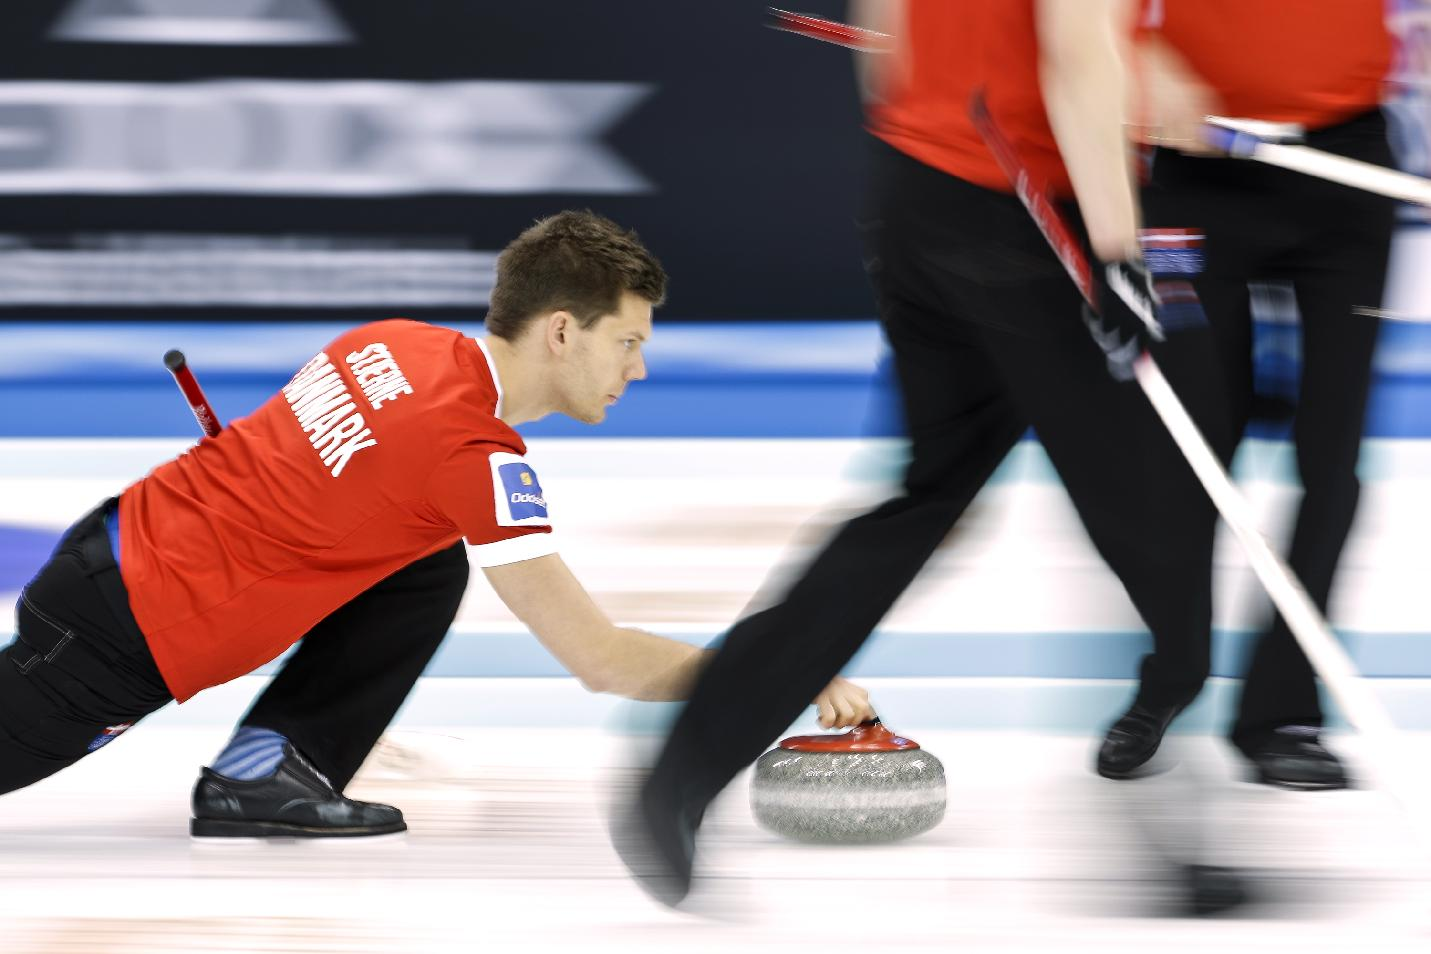 Denmark's Rasmus Stjerne releases the stone during a match against Norway at the World Men's Curling Championship at the Capital Gymnasium in Beijing, China, Sunday, March 30, 2014